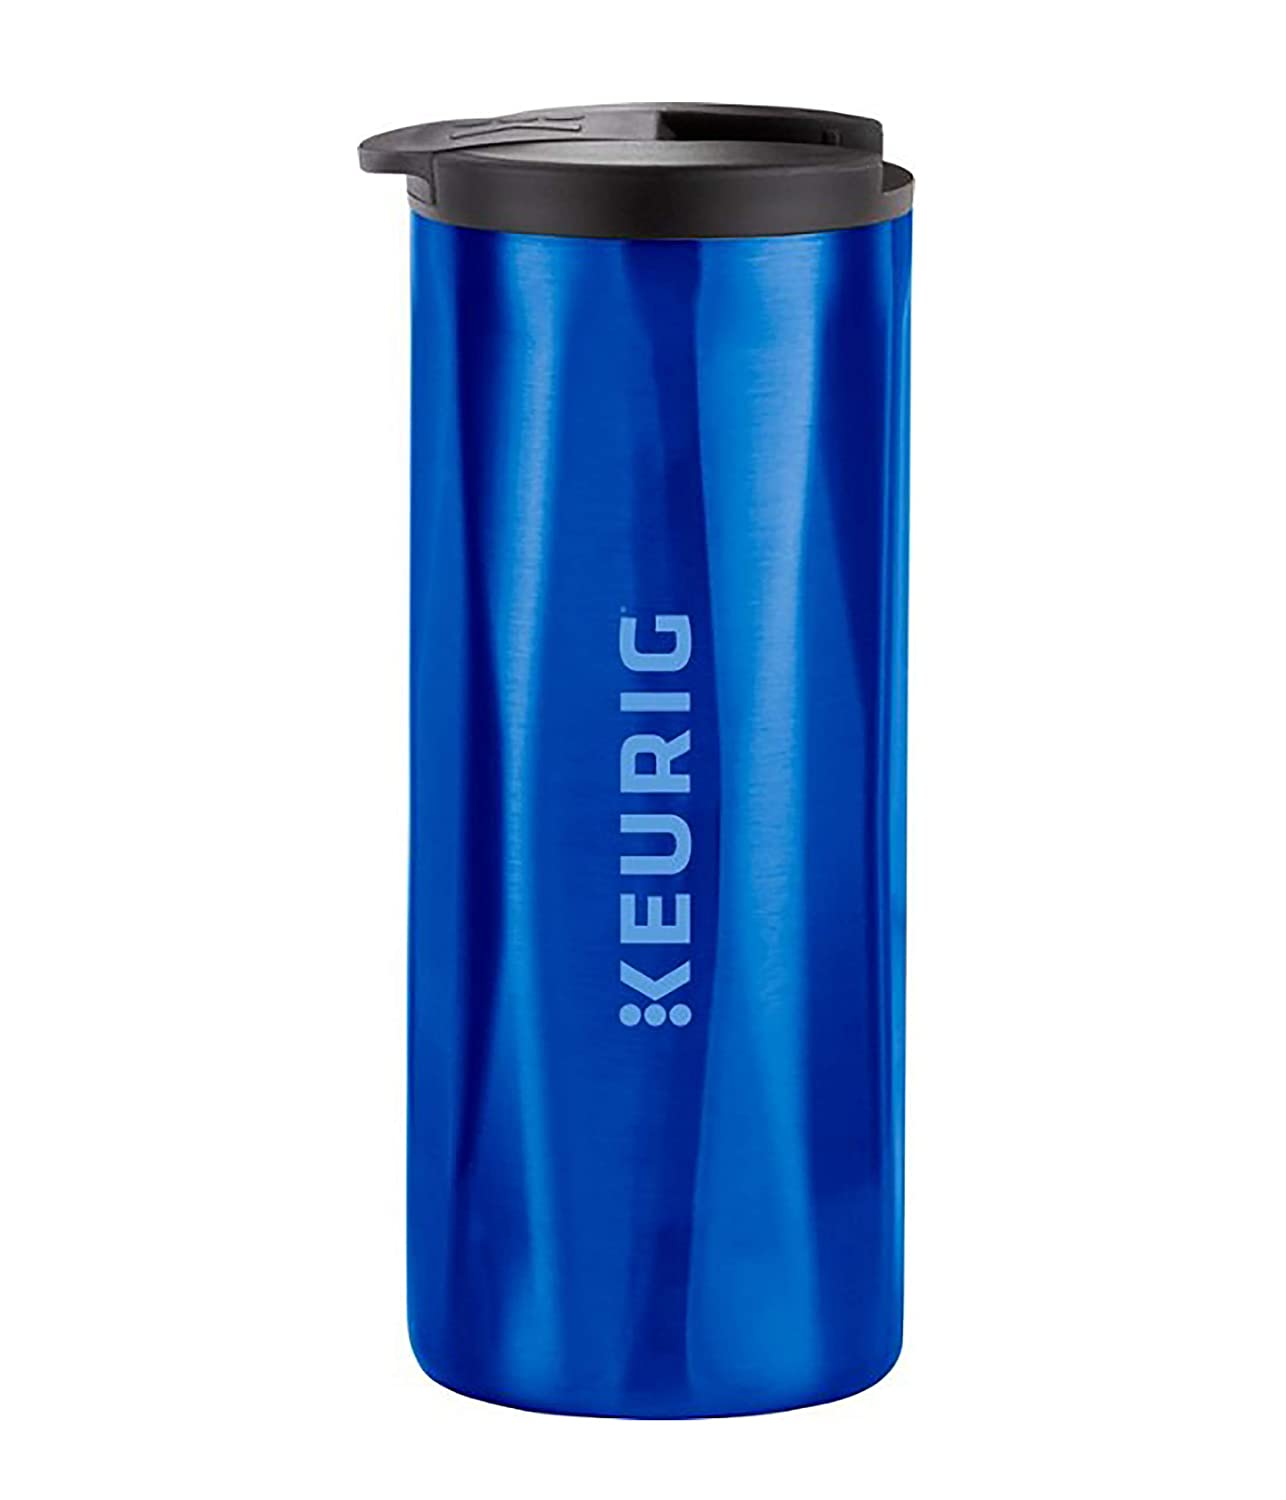 Keurig 14oz Faceted, Vacuum Sealed Insulated, Double-Walled, Stainless Steel Coffee Travel Mug, Works with K-Cup Pod Makers, Royal Blue